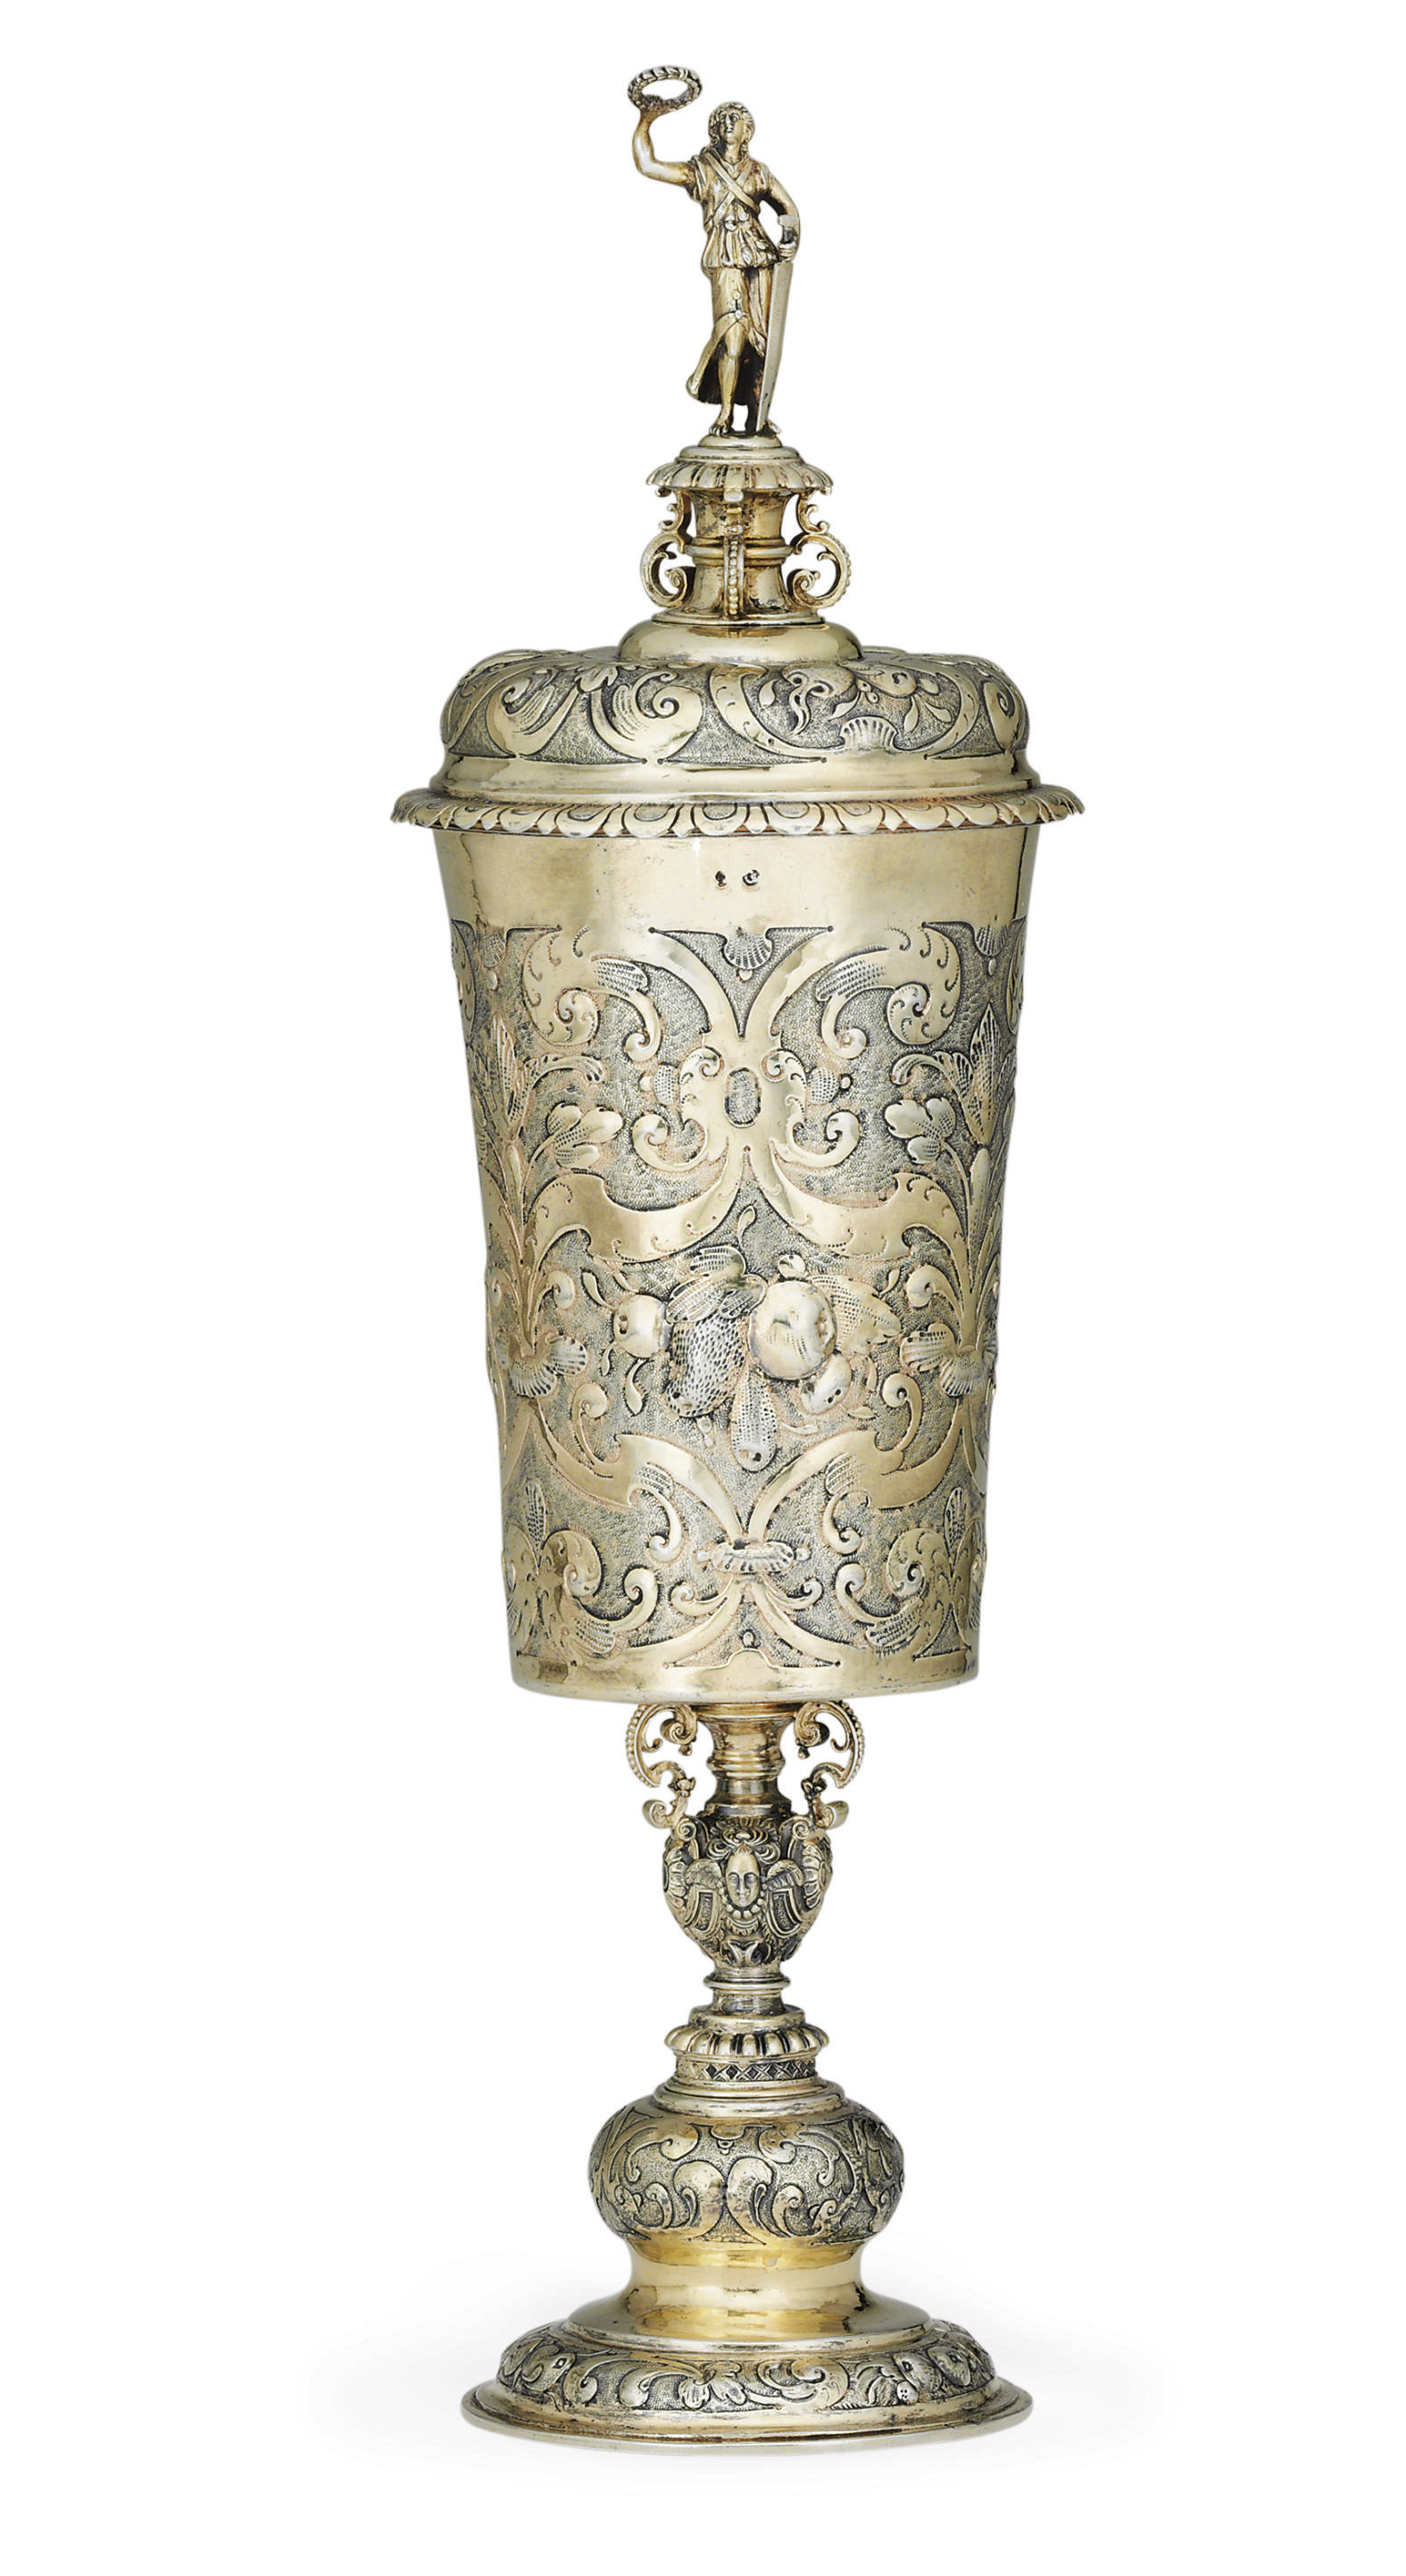 A FINE GERMAN SILVER-GILT STANDING CUP AND COVER